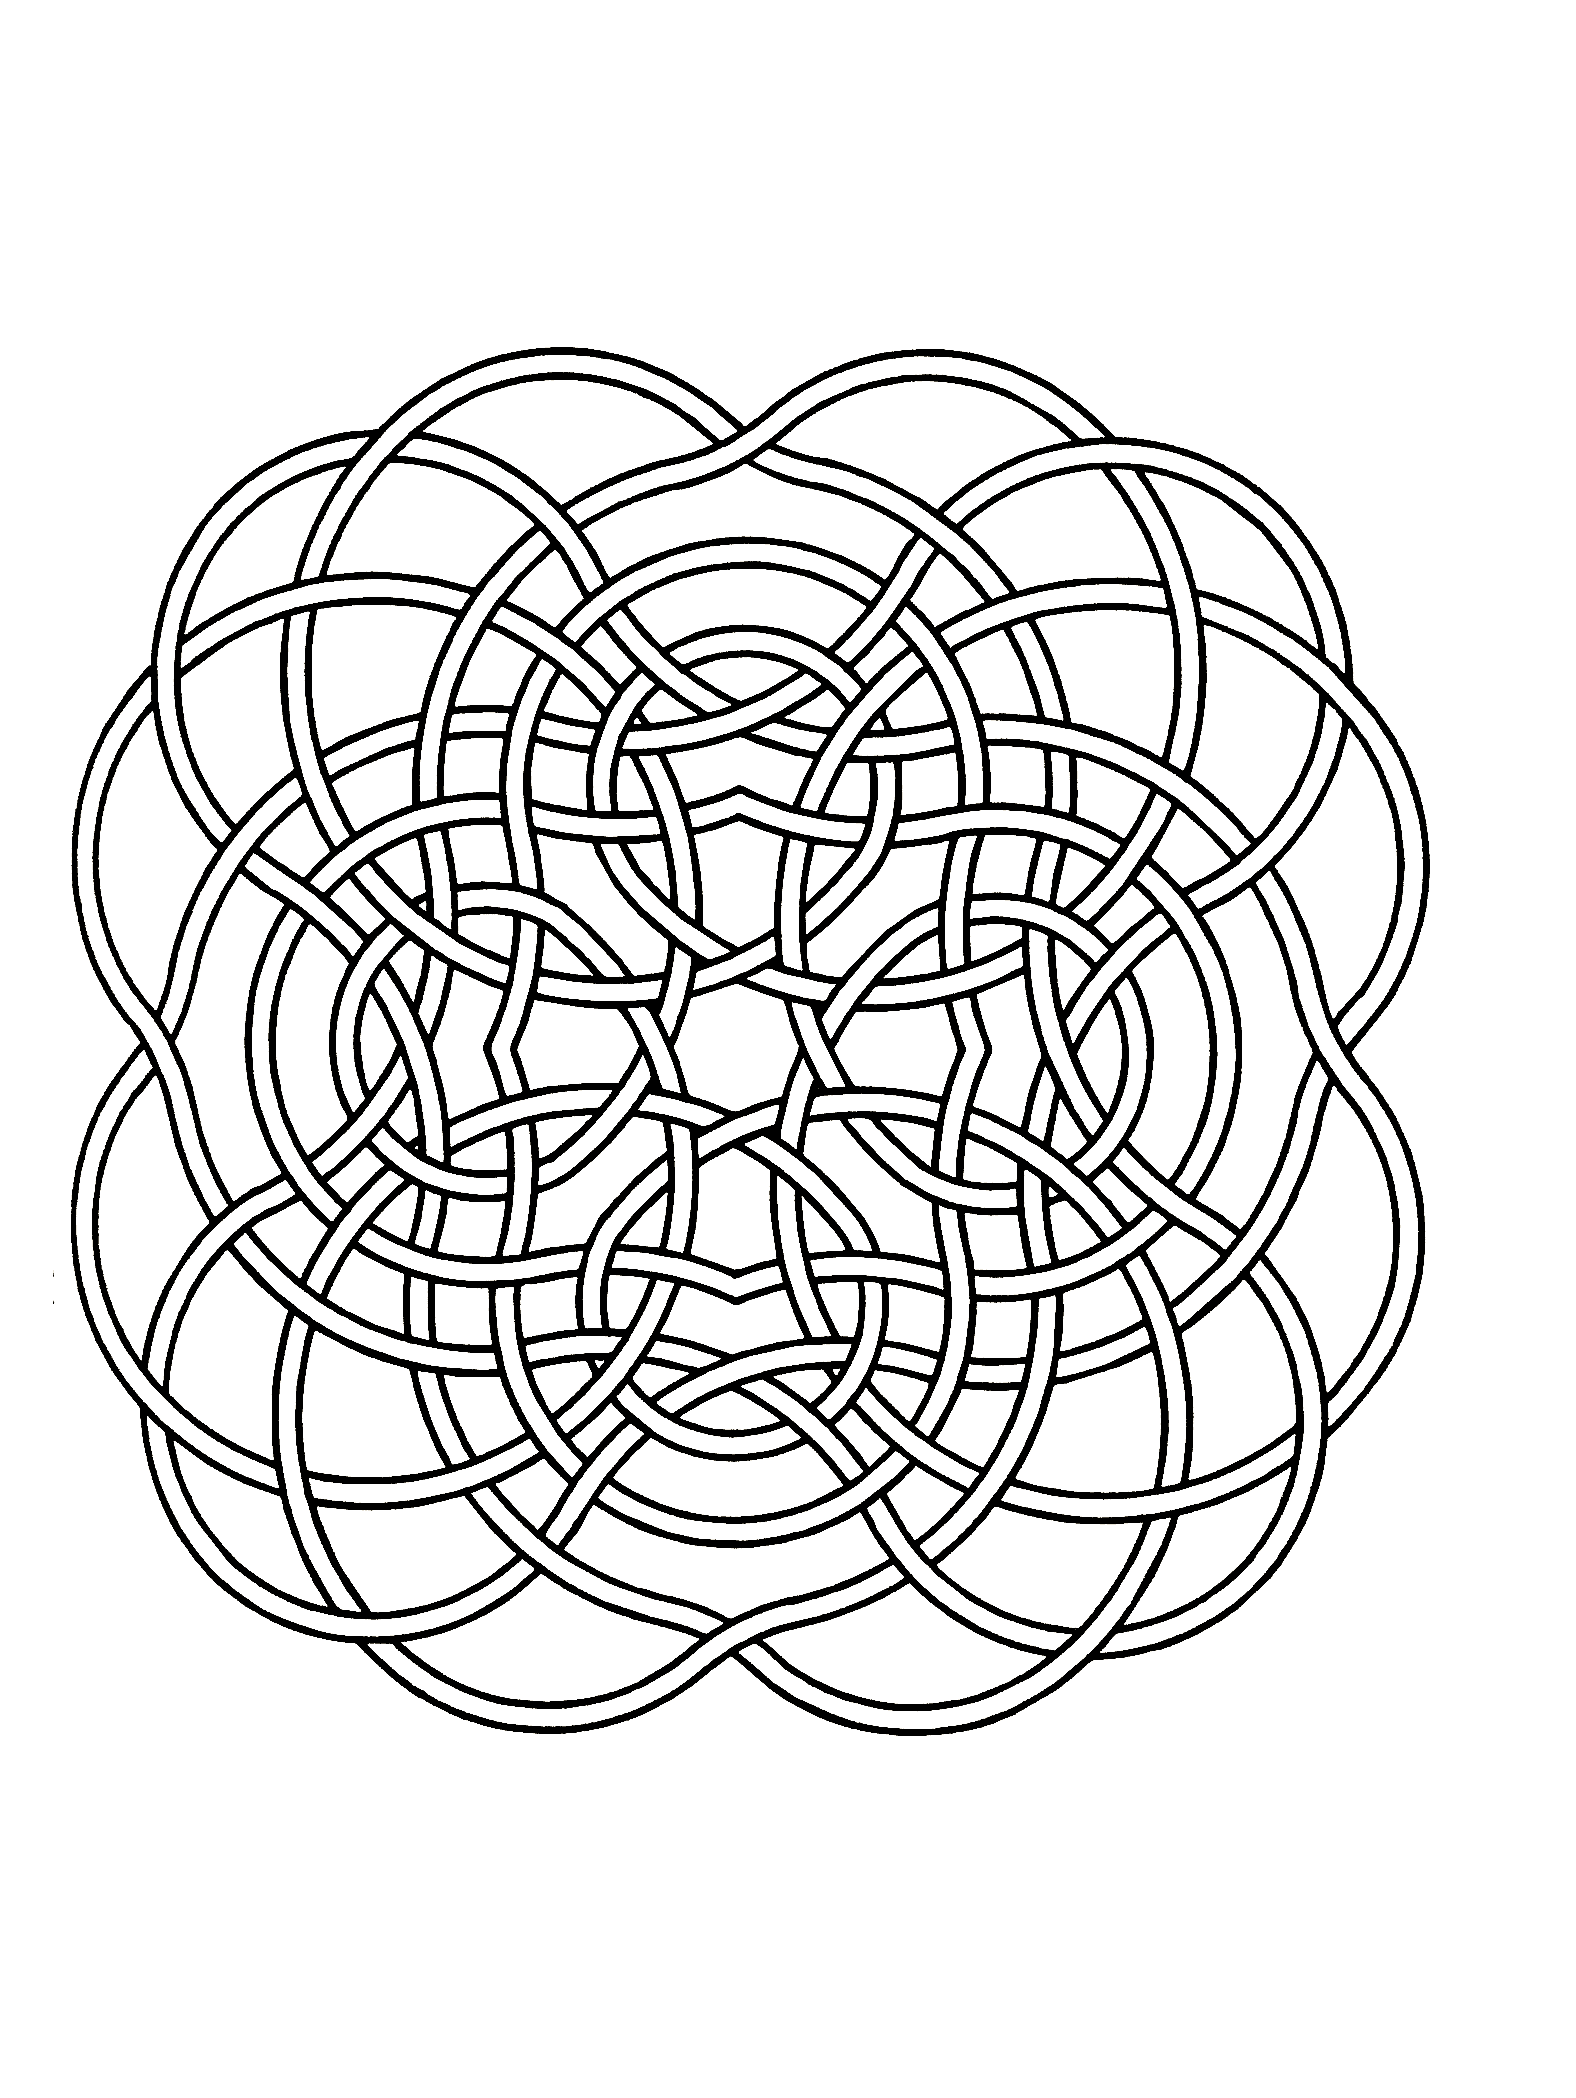 Simple mandala 49 - M&alas Coloring pages for kids to ...